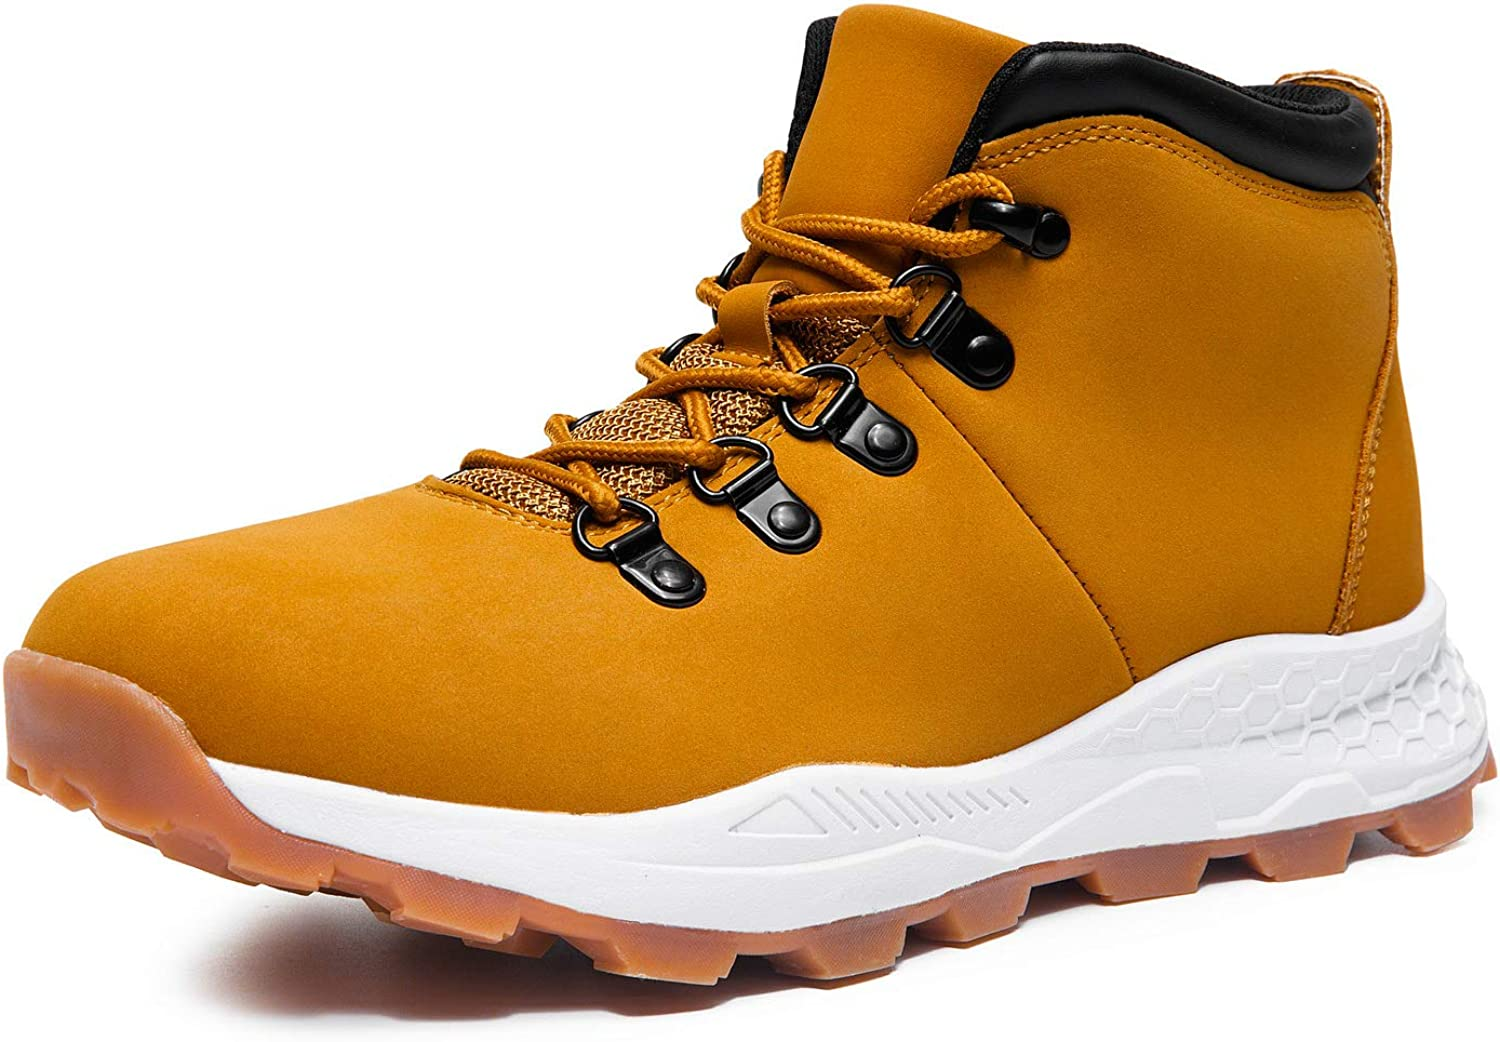 Men's Hiking Max 43% OFF Max 64% OFF Boots Outdoor Lace-up Lightweight Shoes